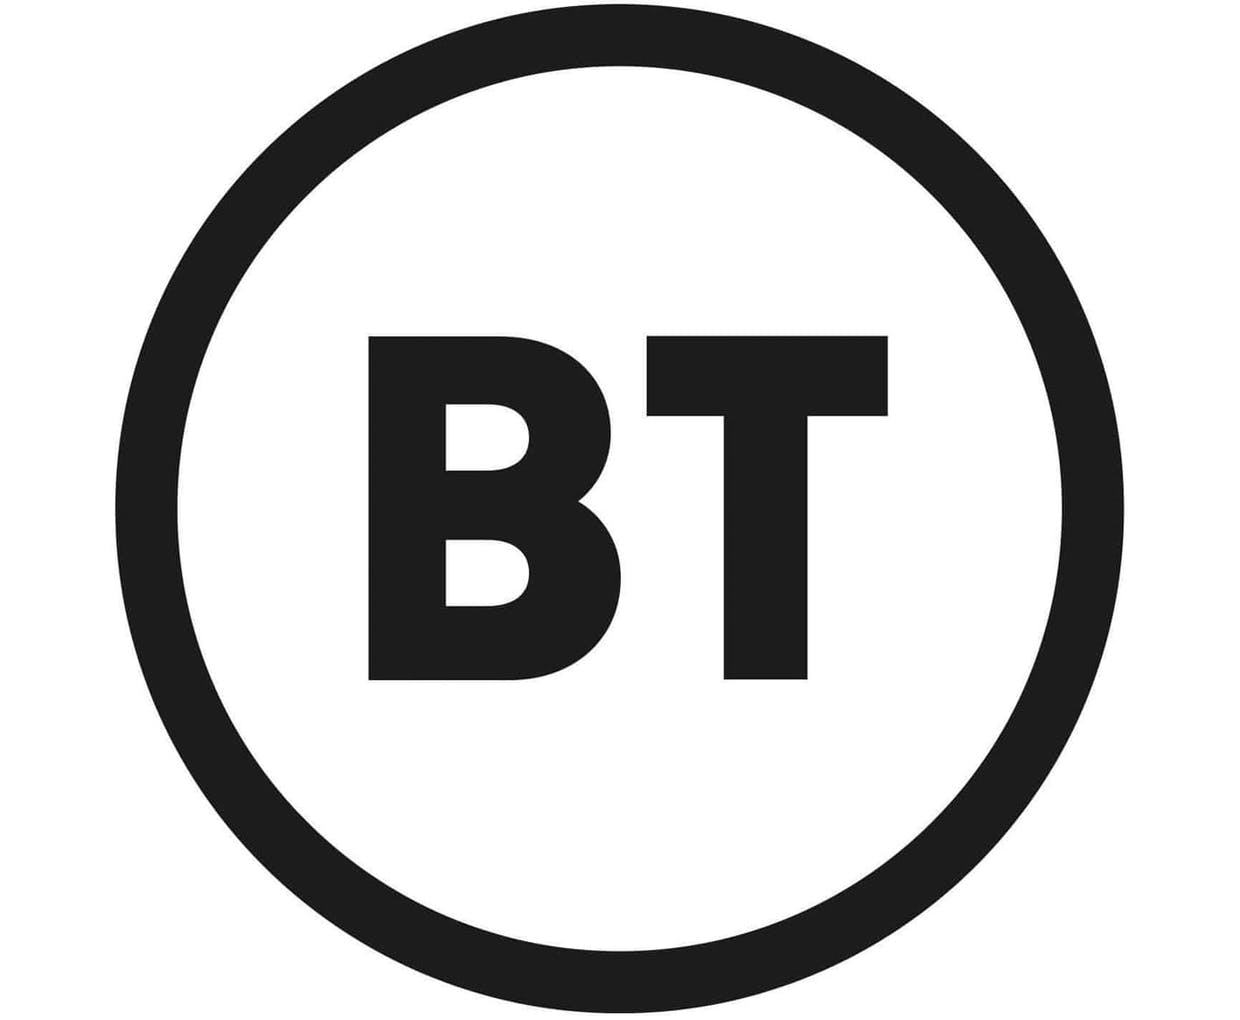 If less really is more, did BT get its new logo right?